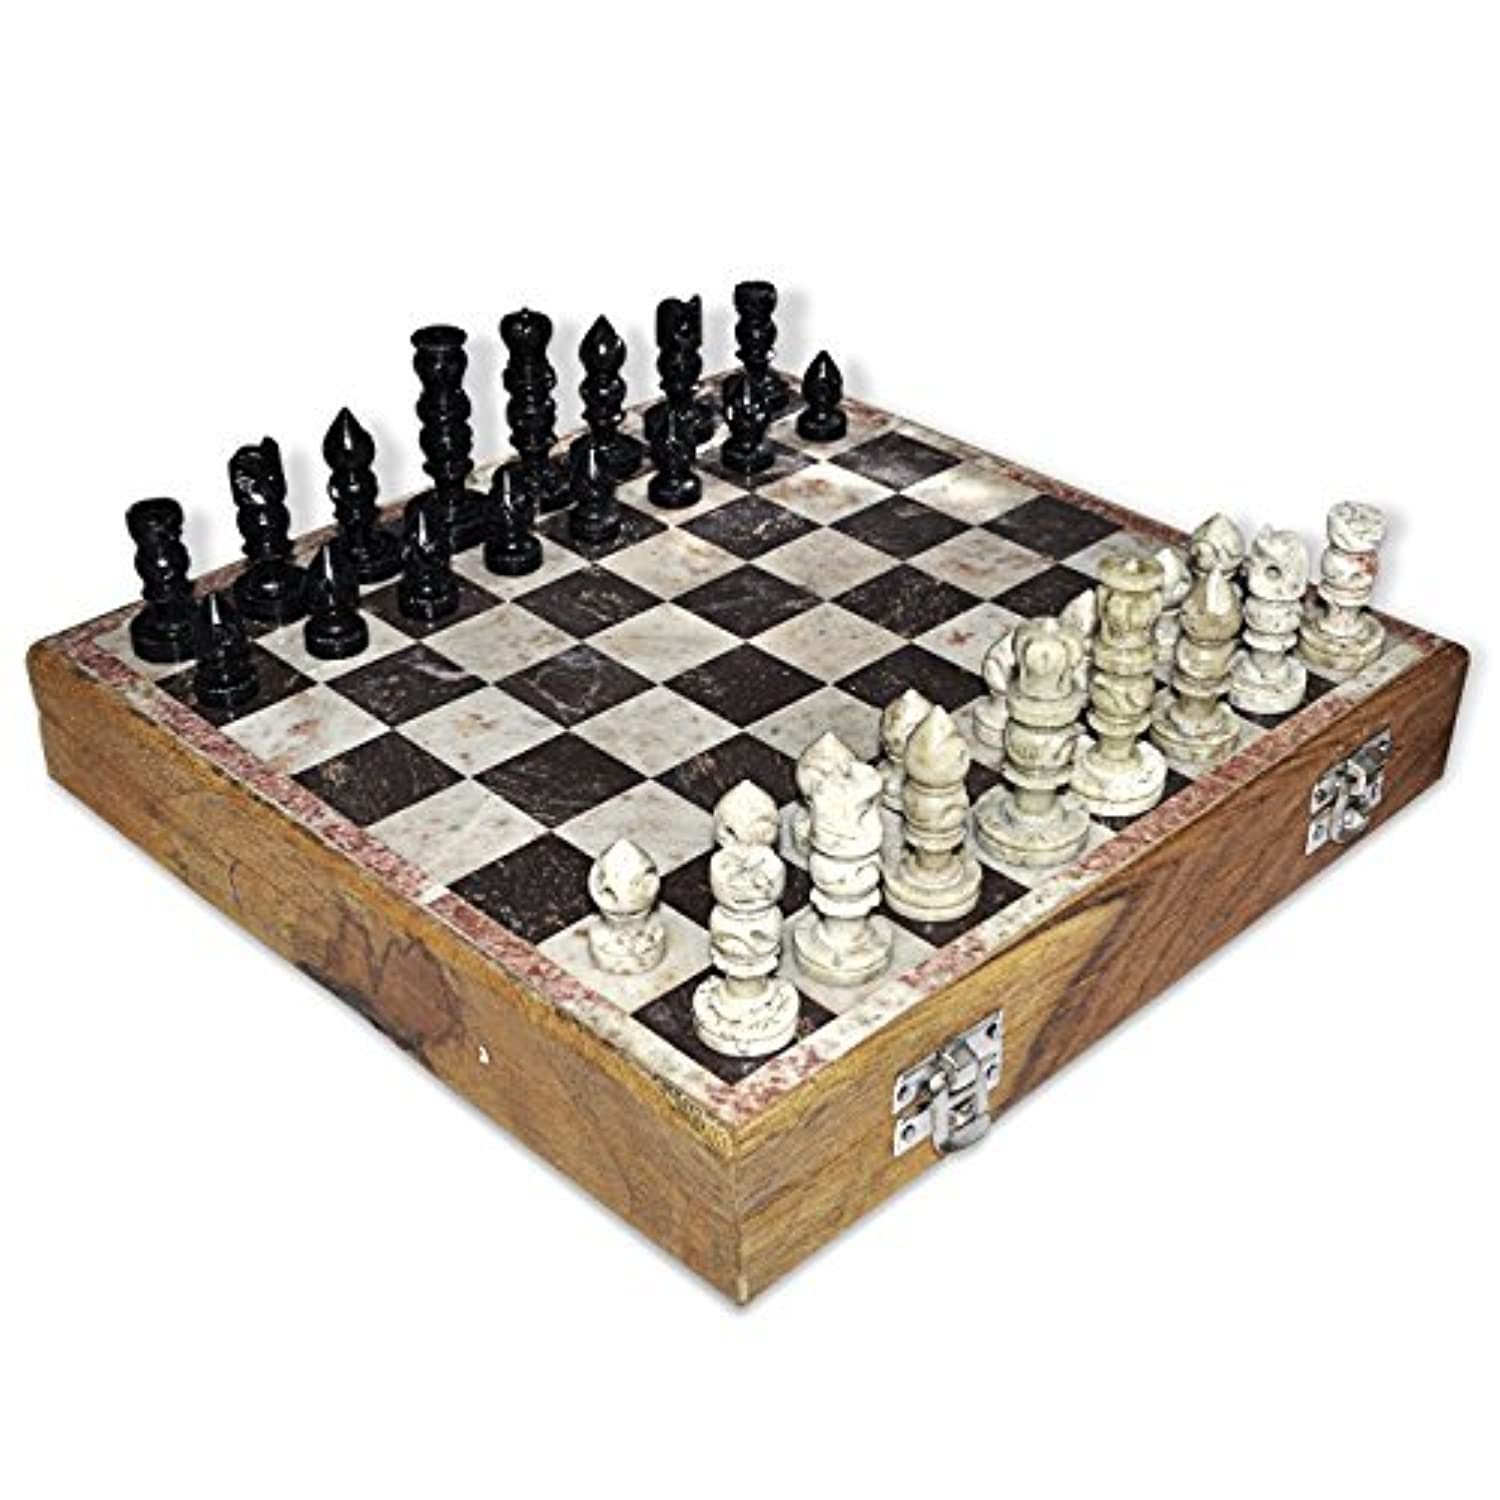 Dungri India 12x12 Stone Wooden Chess Game Board Set + Hand Crafted Pawns by Dungri India Craft [並行輸入品]